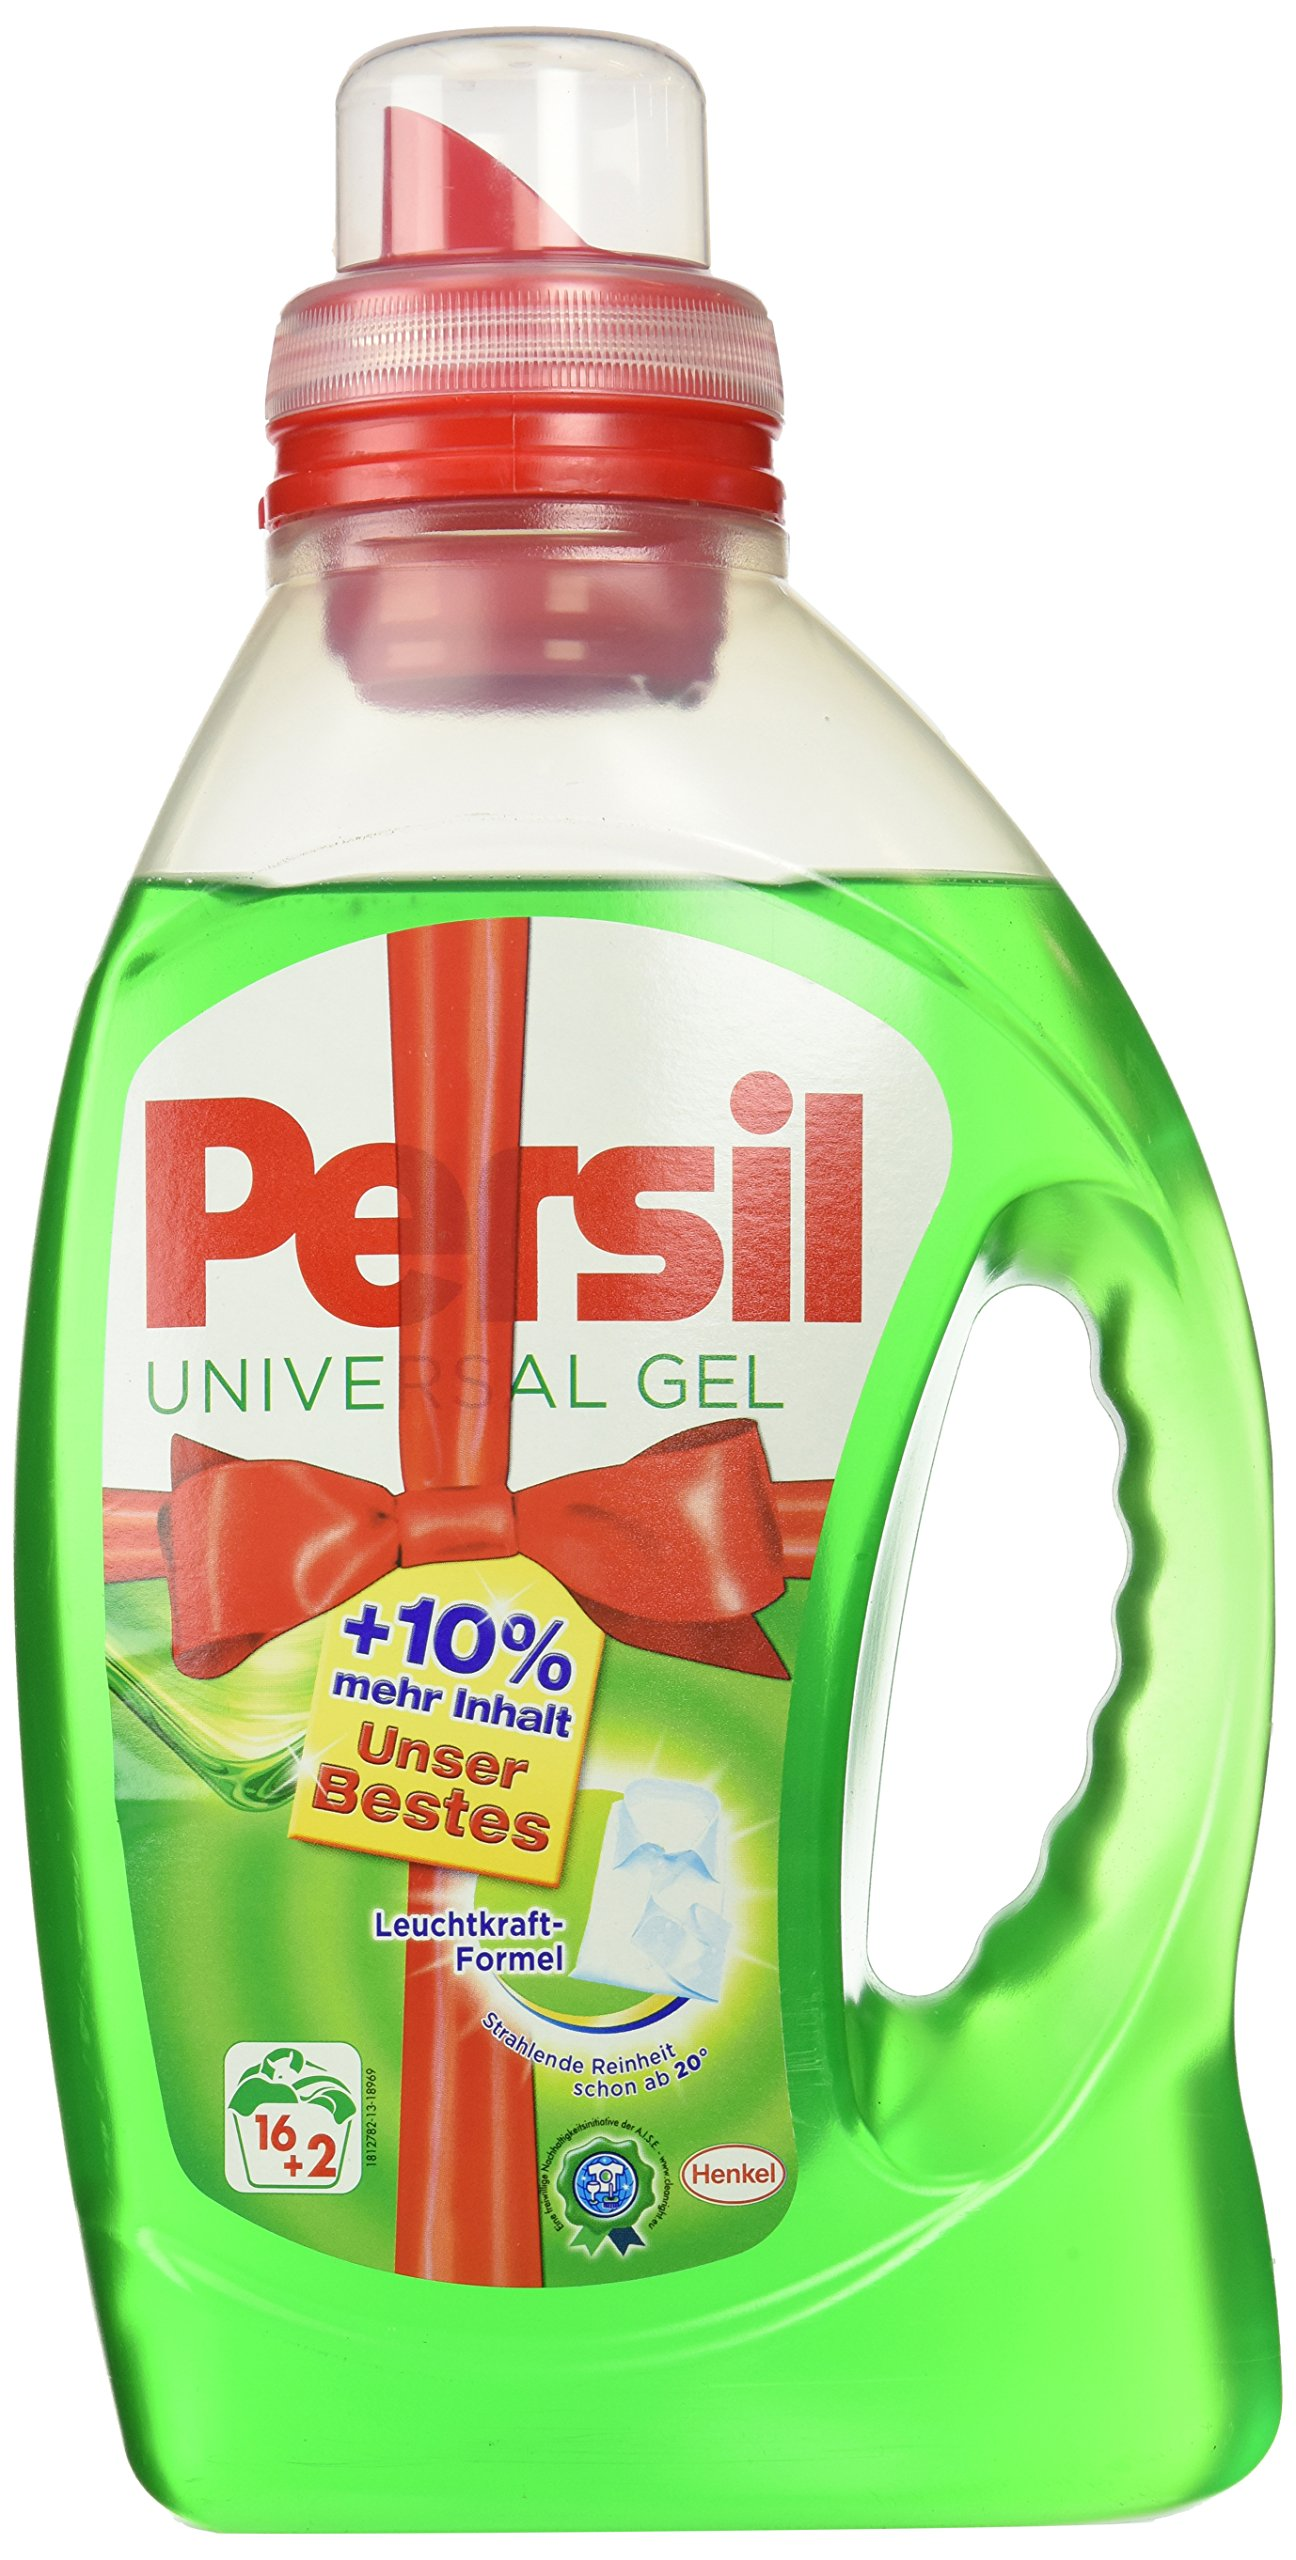 persil gel color liquid laundry detergent liter liquid by persil health. Black Bedroom Furniture Sets. Home Design Ideas